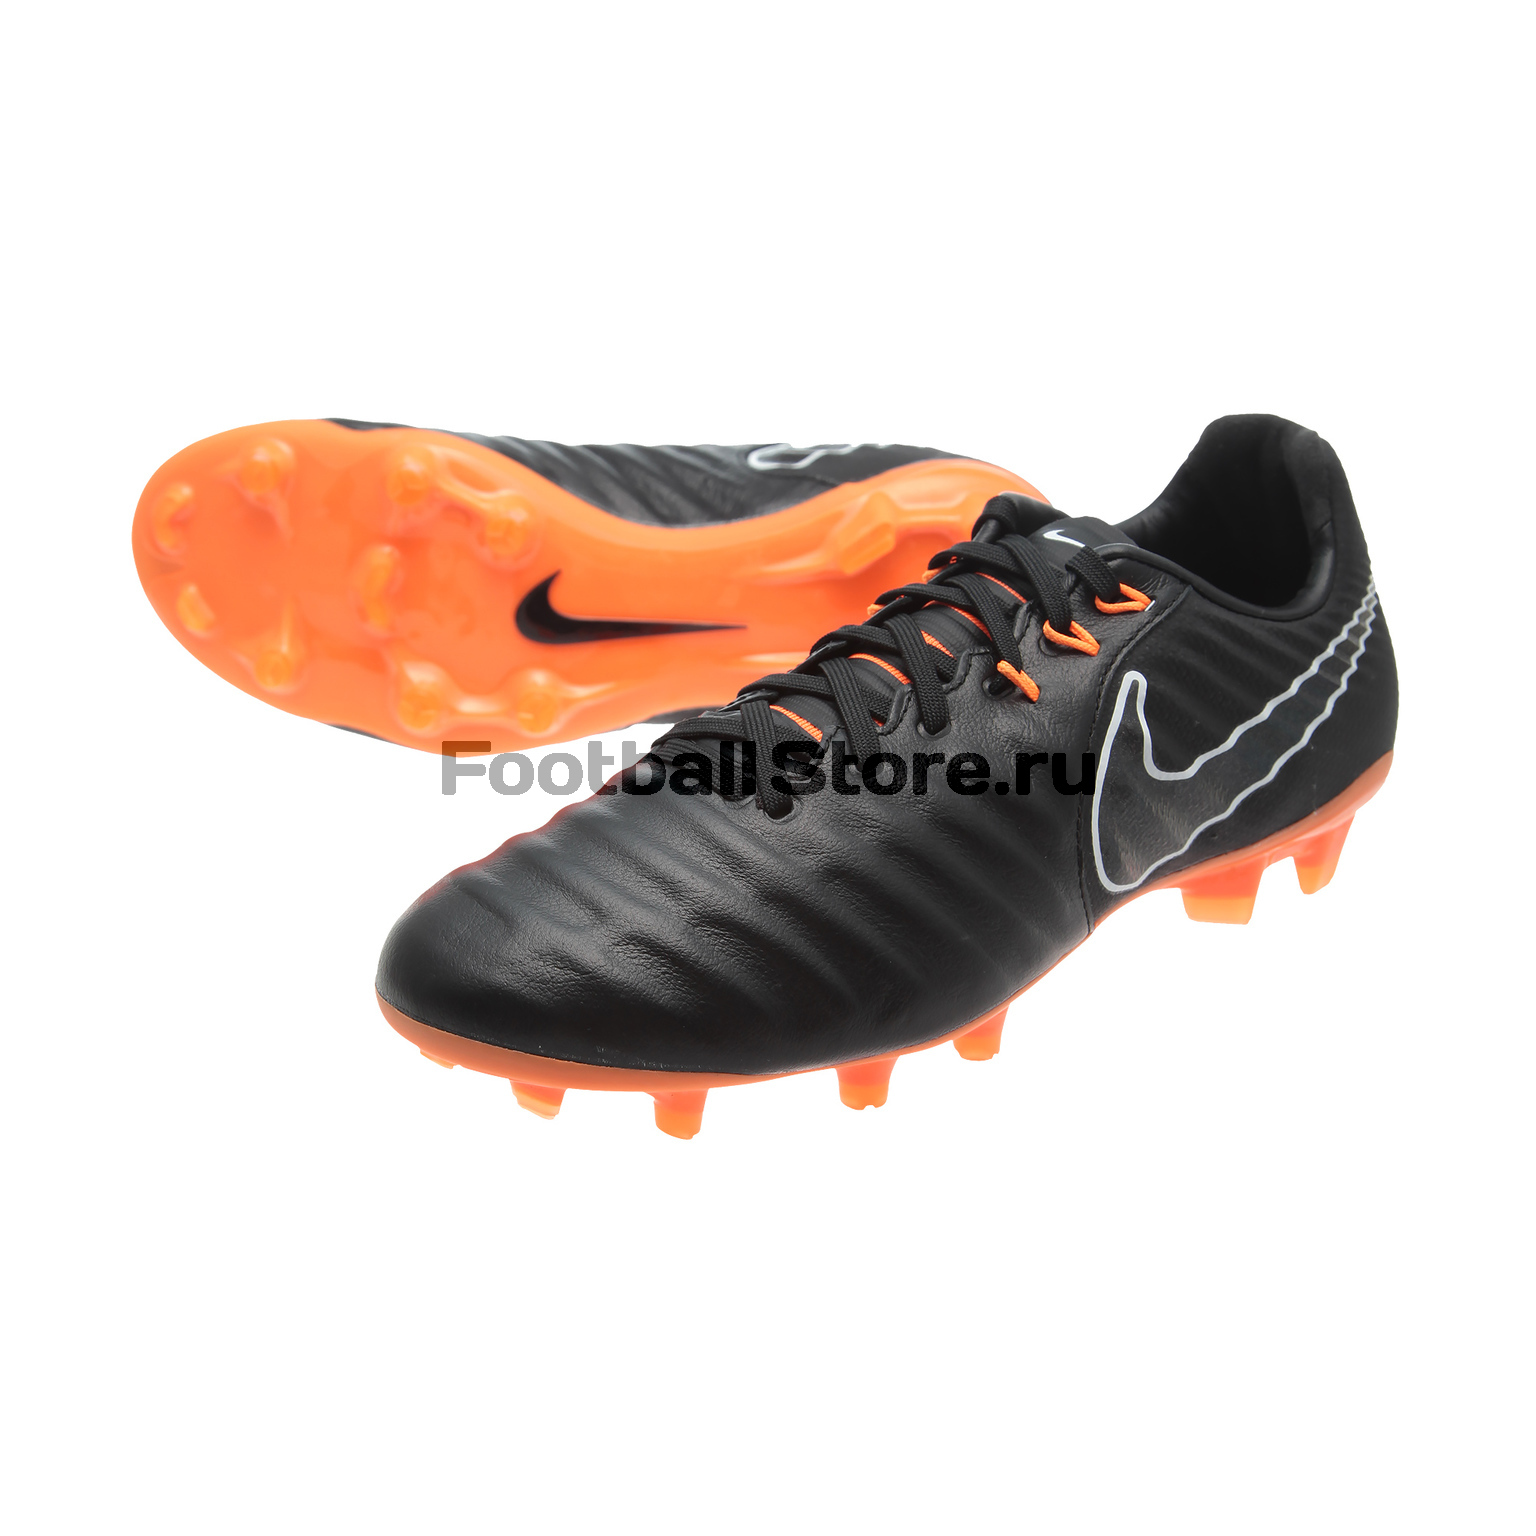 Бутсы Nike JR Legend 7 Elite FG AH7258-080 бутсы nike шиповки nike jr tiempox legend vi tf 819191 018